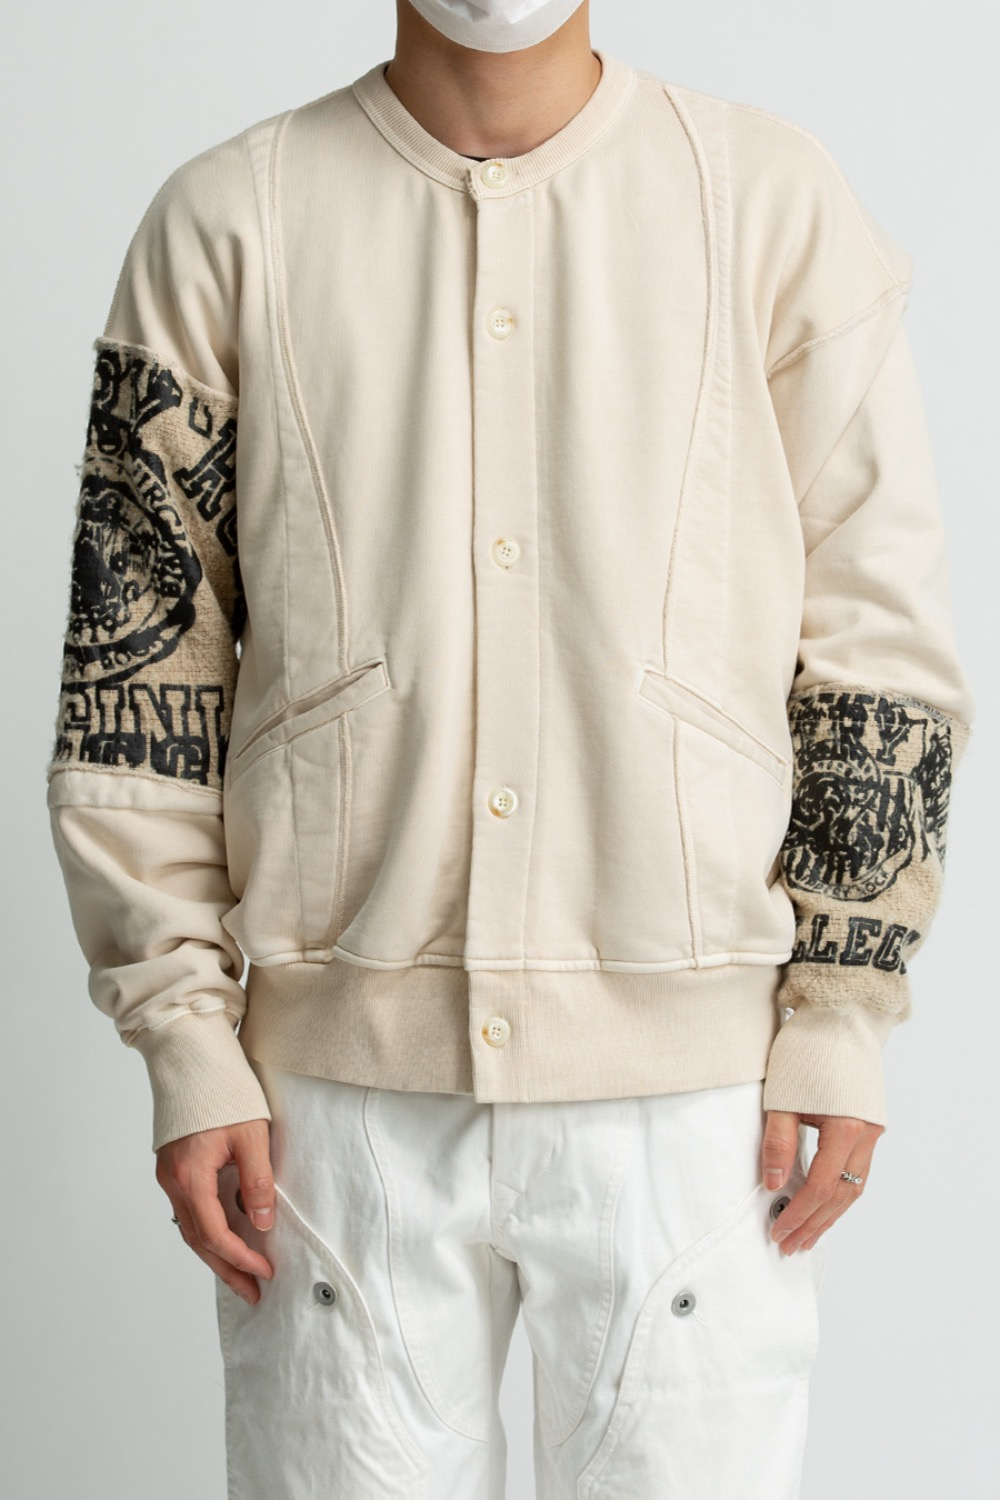 RAW EDGE COLLEGE CARDIGAN CREAM